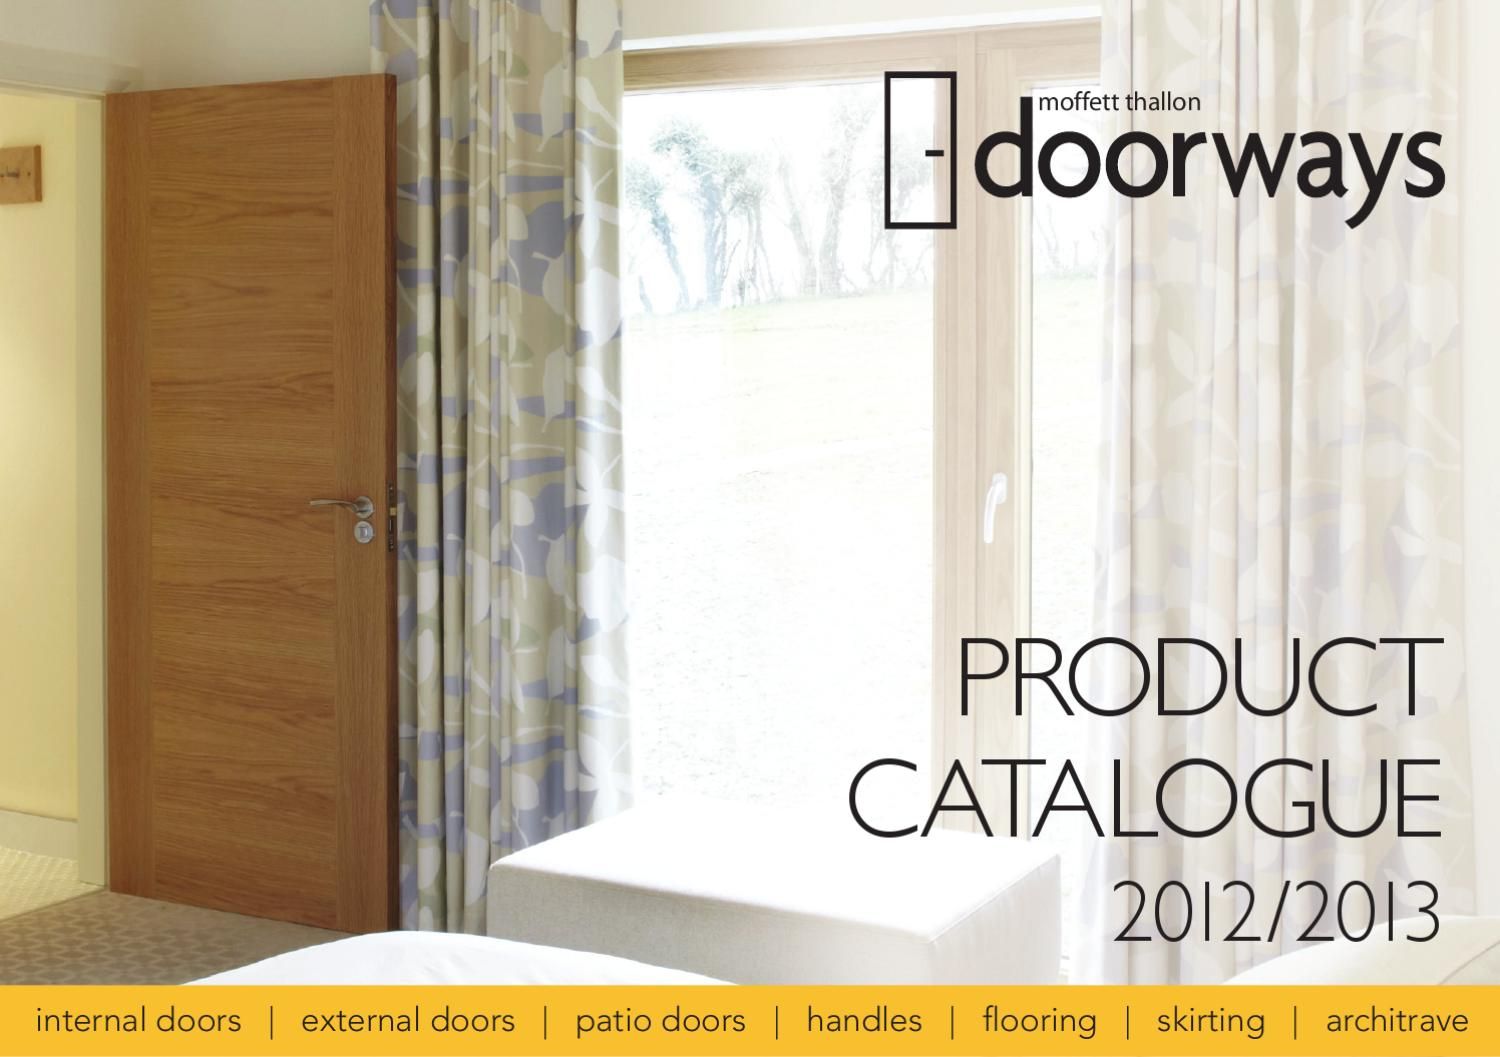 Doorways Product Catalogue 2012 2013 By Matija Boban Issuu